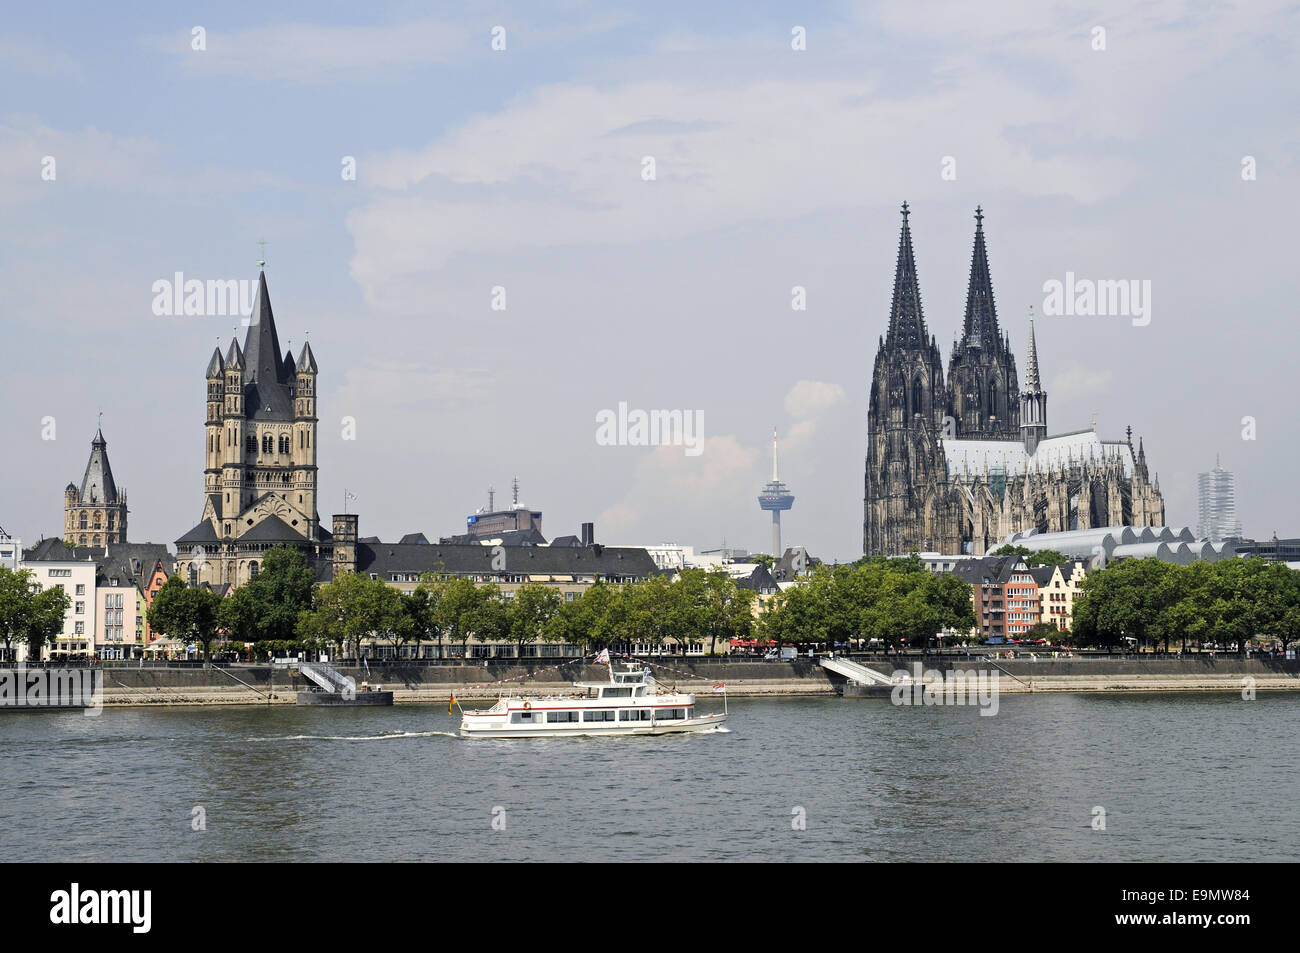 riverside, Rhine River, Cologne, Germany Stock Photo